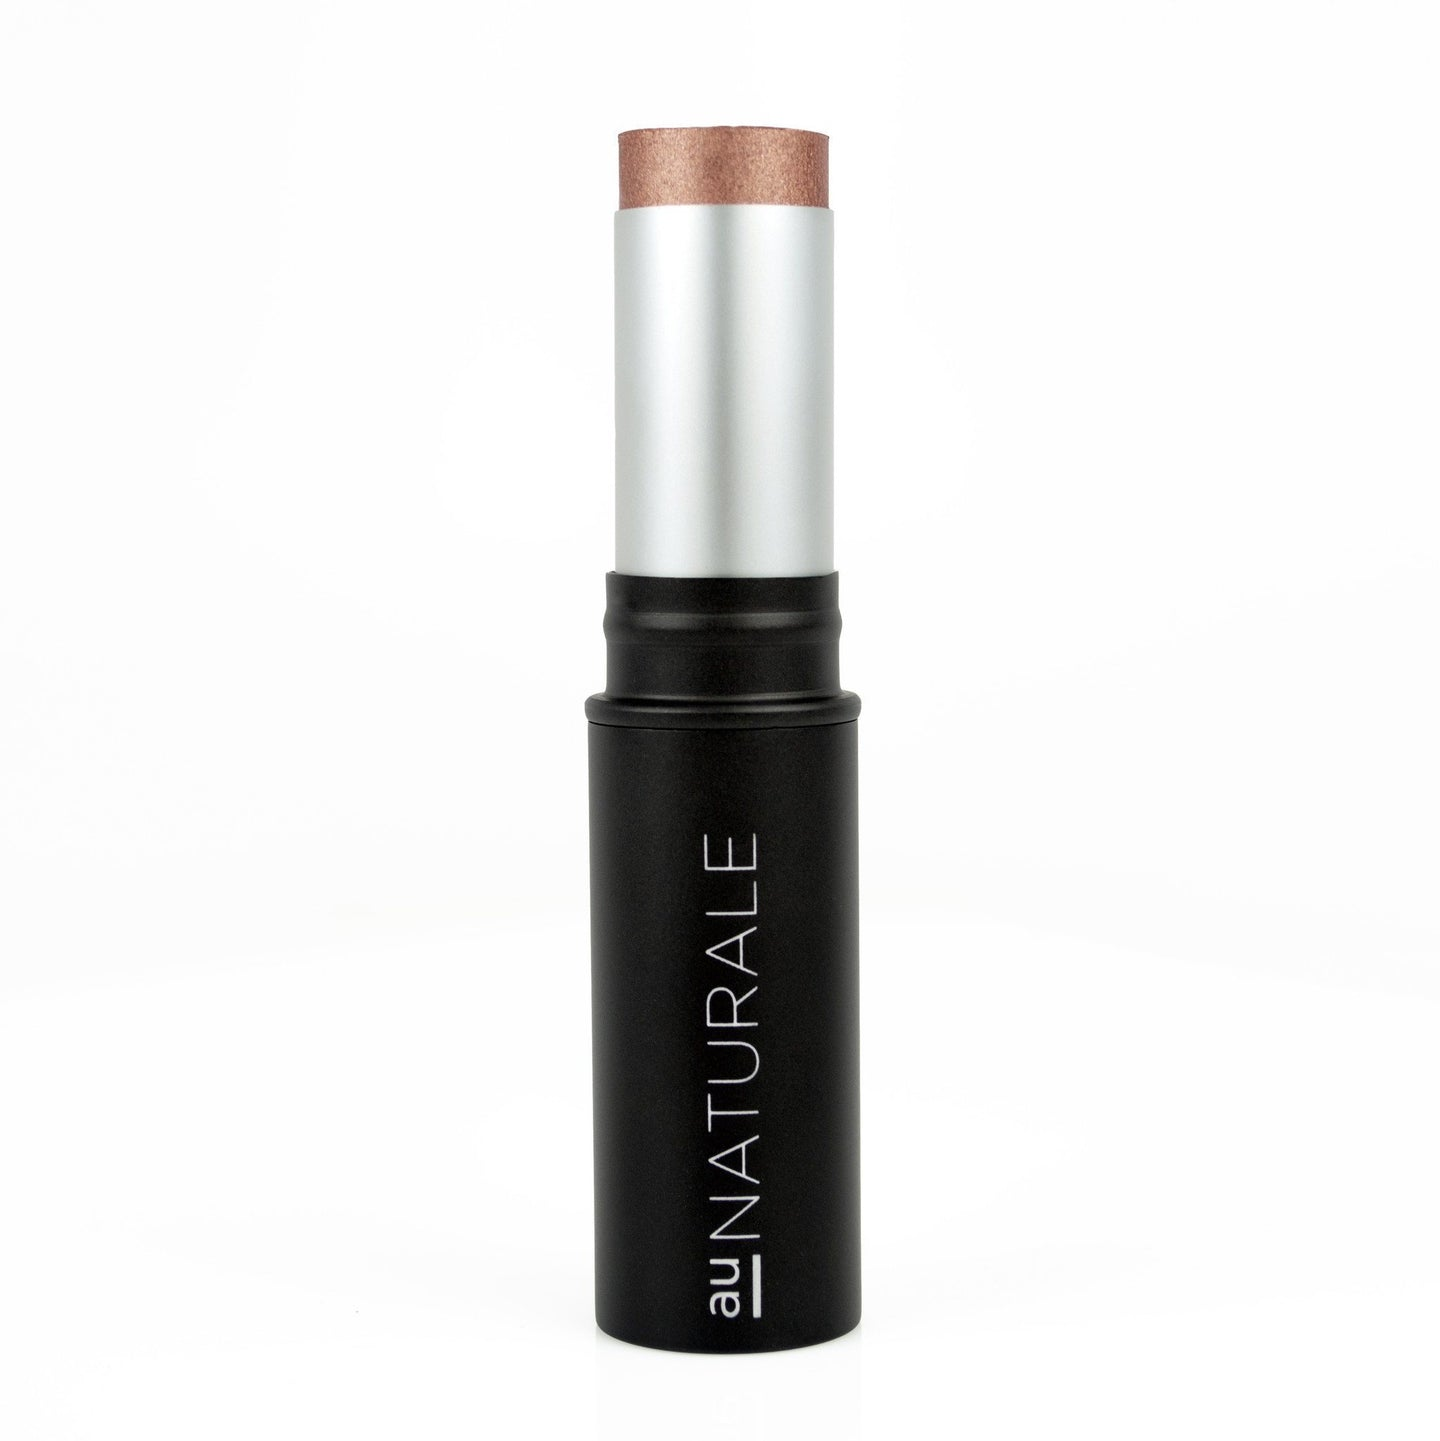 Au Naturale The All-Glowing Creme Highlighter Stick - Switch 2 Pure